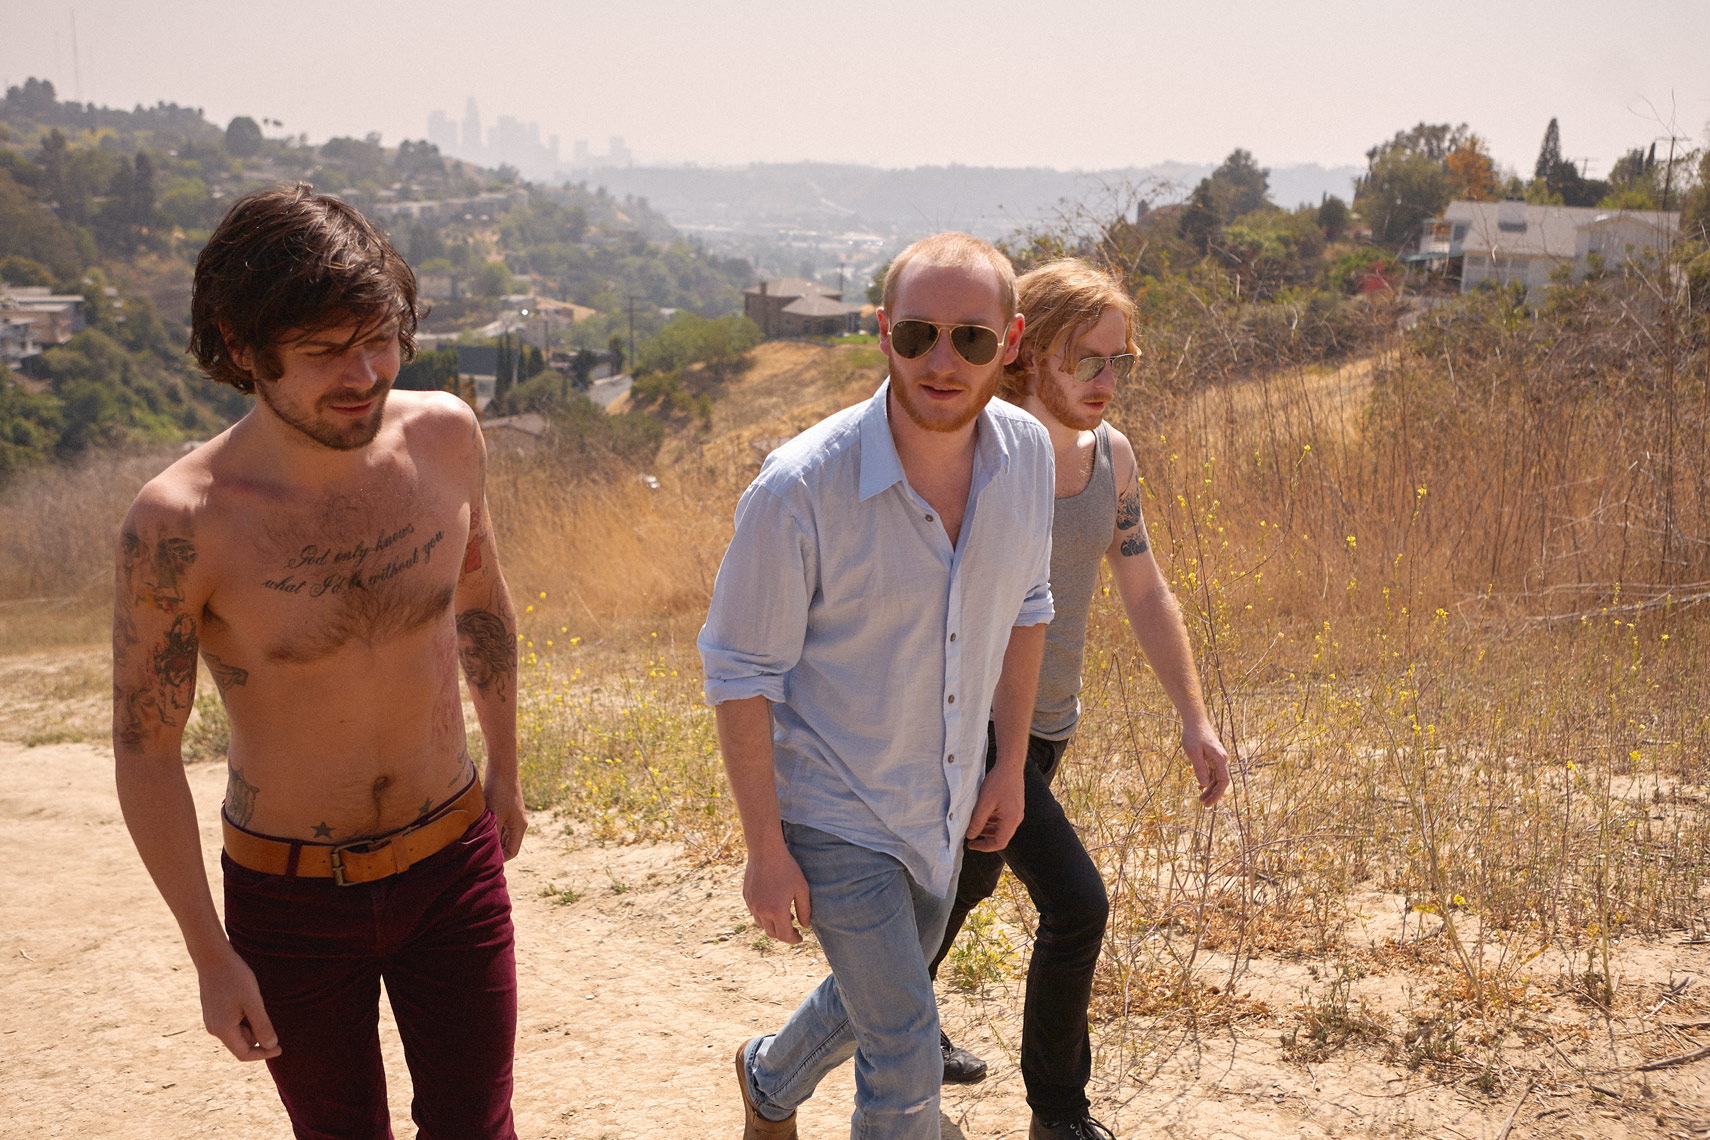 Biffy Clyro by Tom Oxley